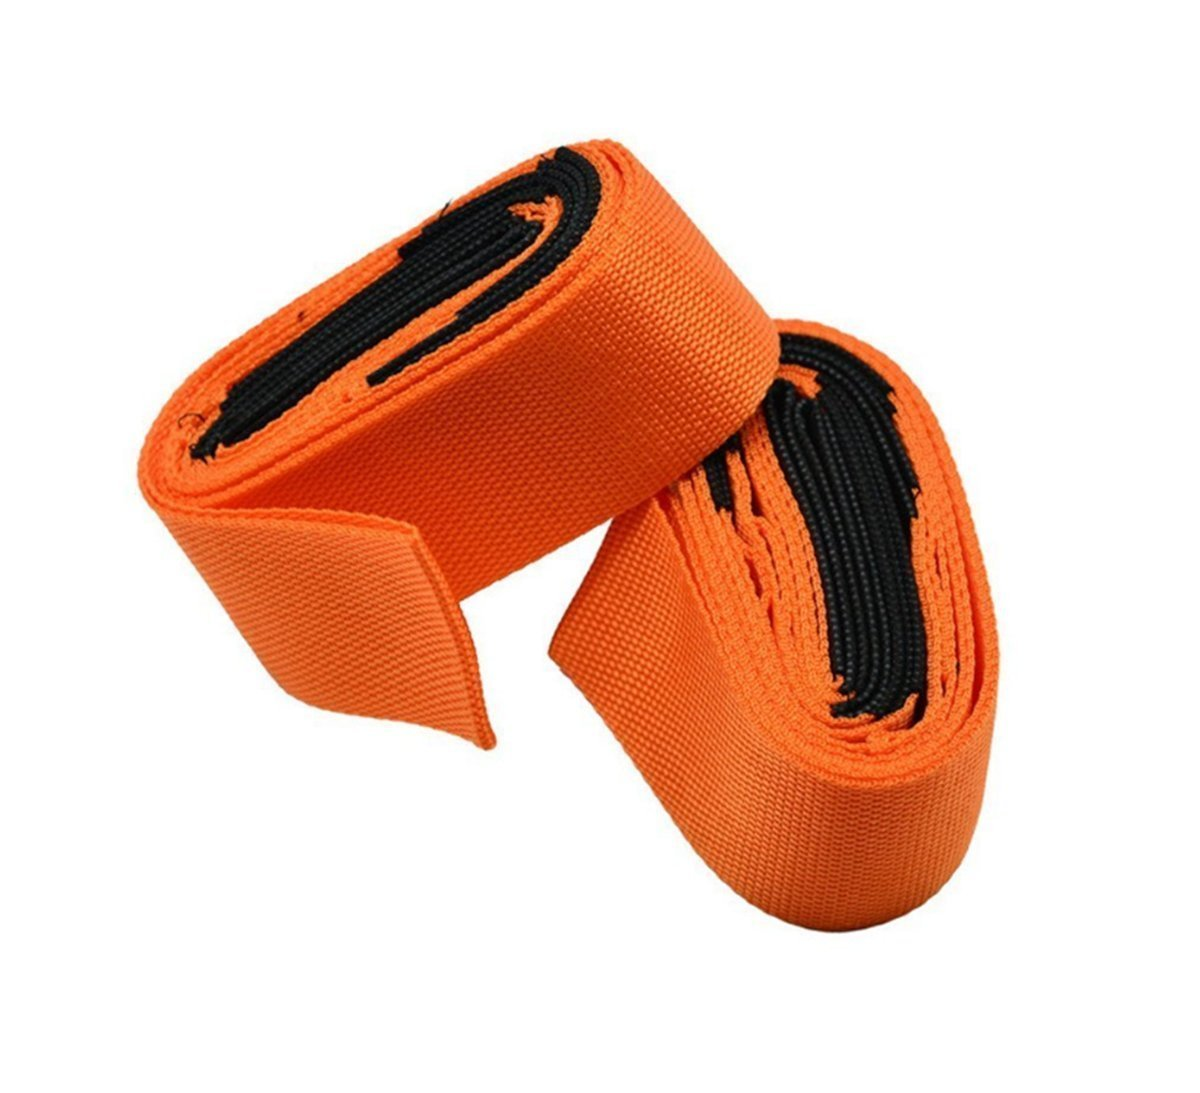 Wommty 2-Person Lifting and Moving Straps - Easily Move Lift Carry And Secure Furniture Appliances Straps and Harnesses for 2 Movers - Great Tool To Add To Moving Supplies (Orange) Wommty EU